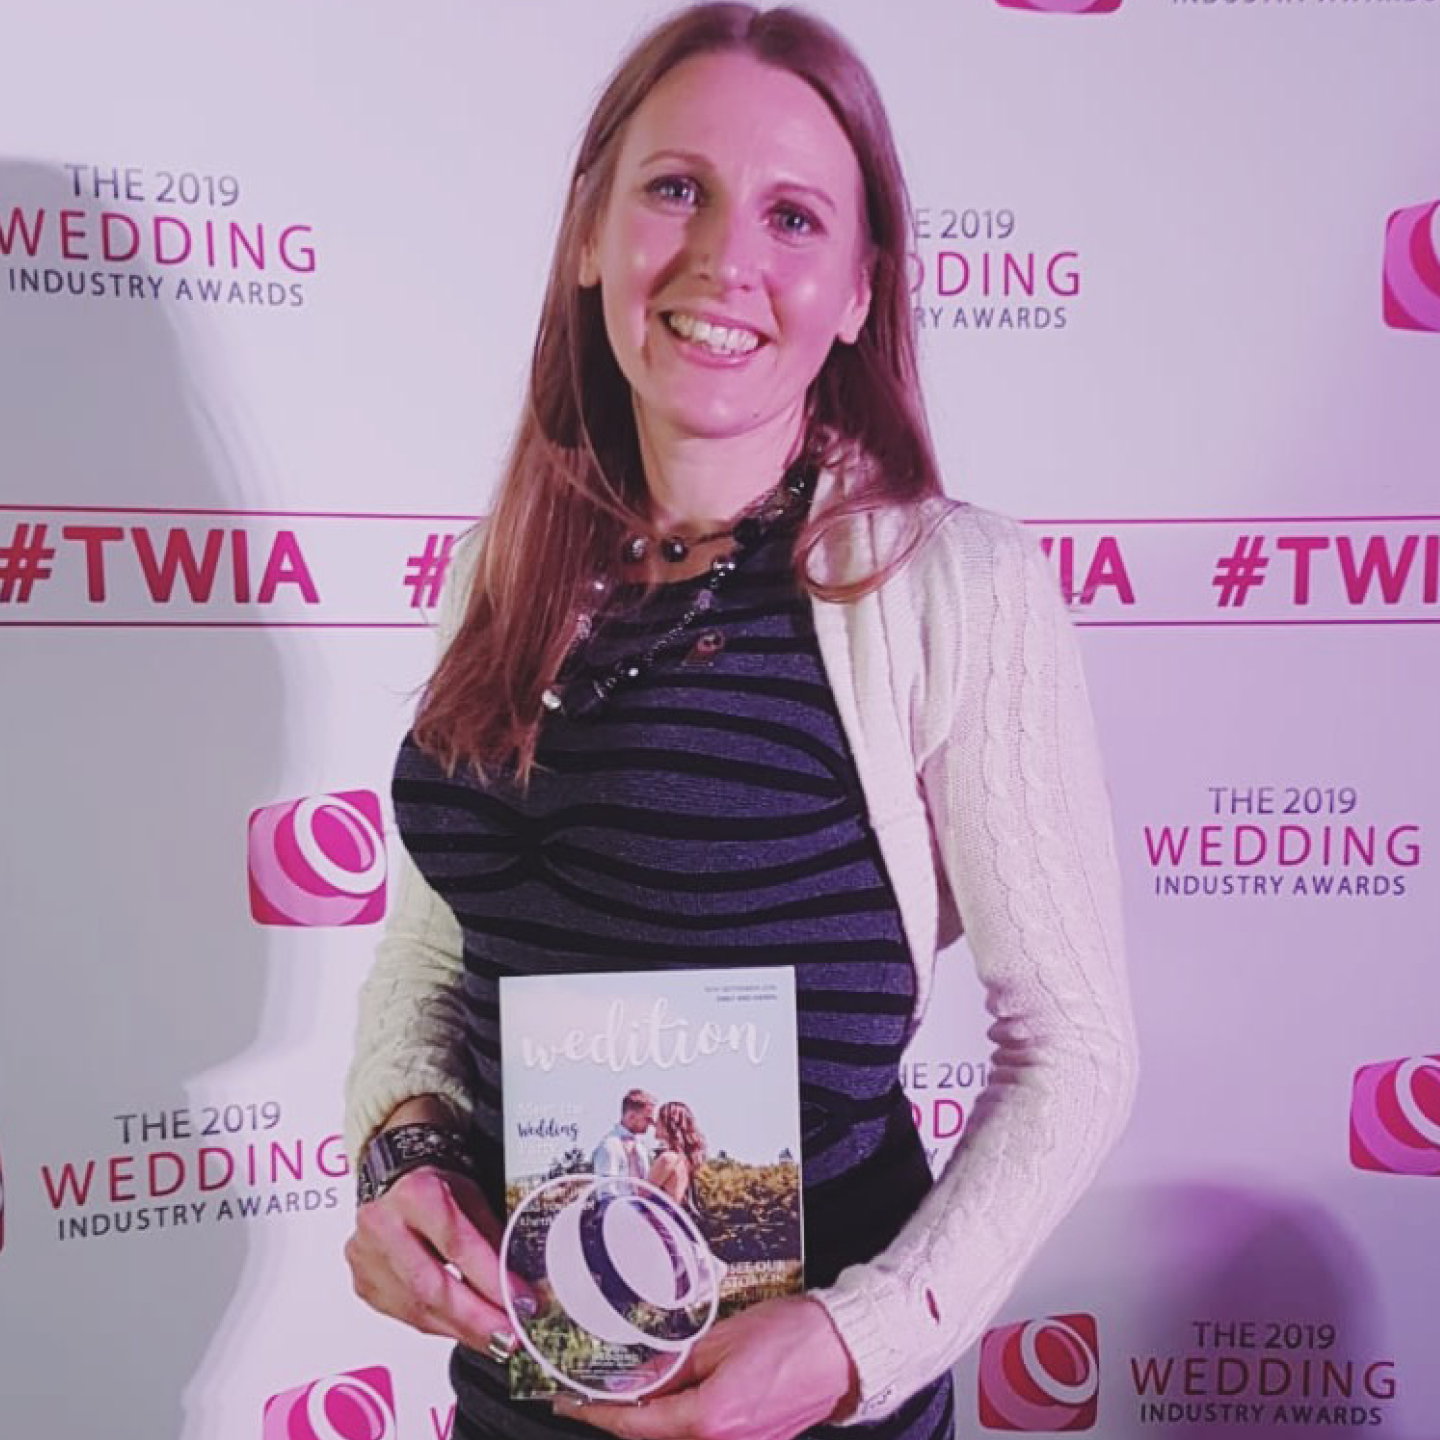 TWIA19 special touch winner Wedition